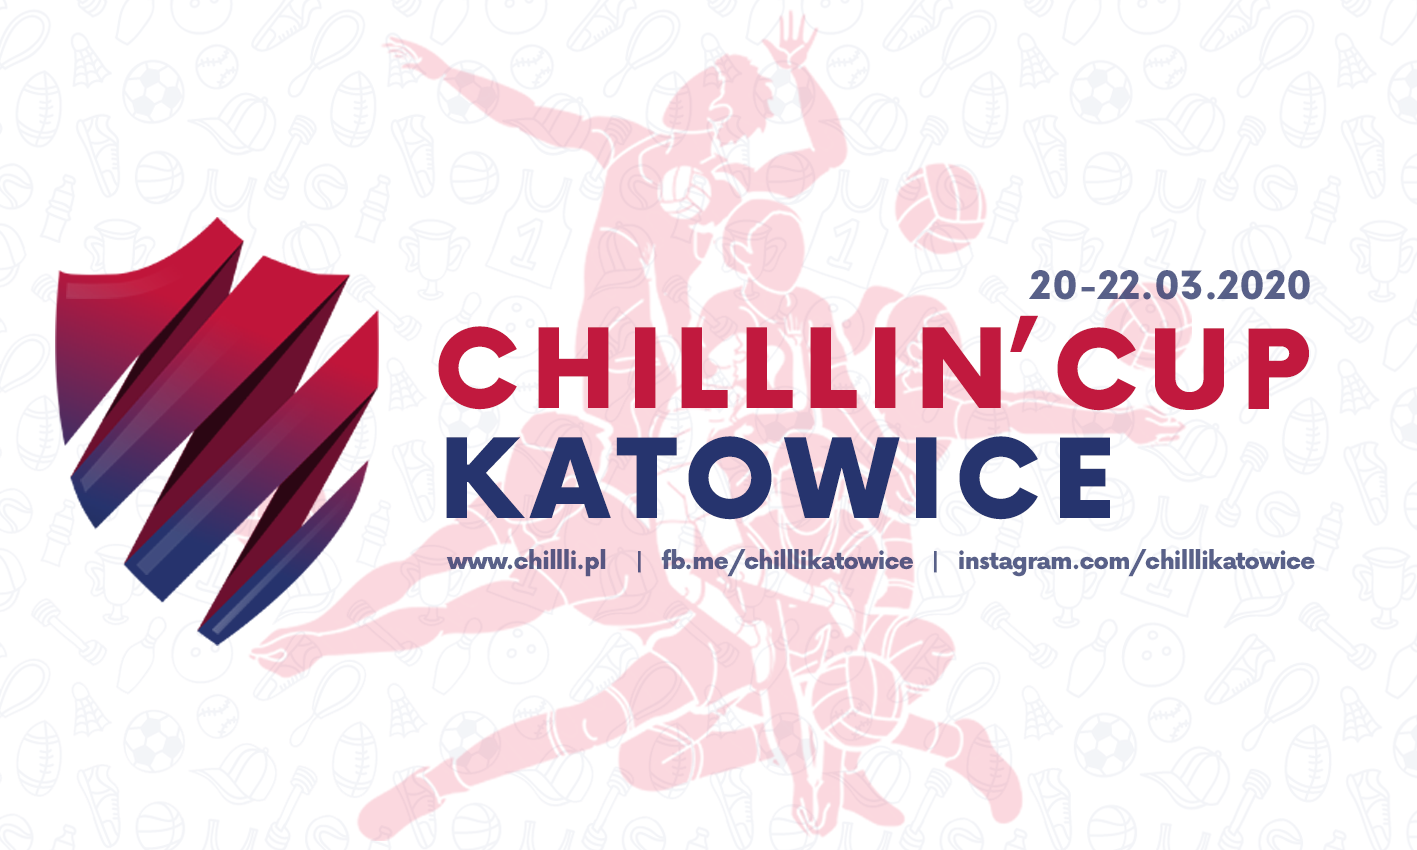 Chilllin' Cup Katowice 2020